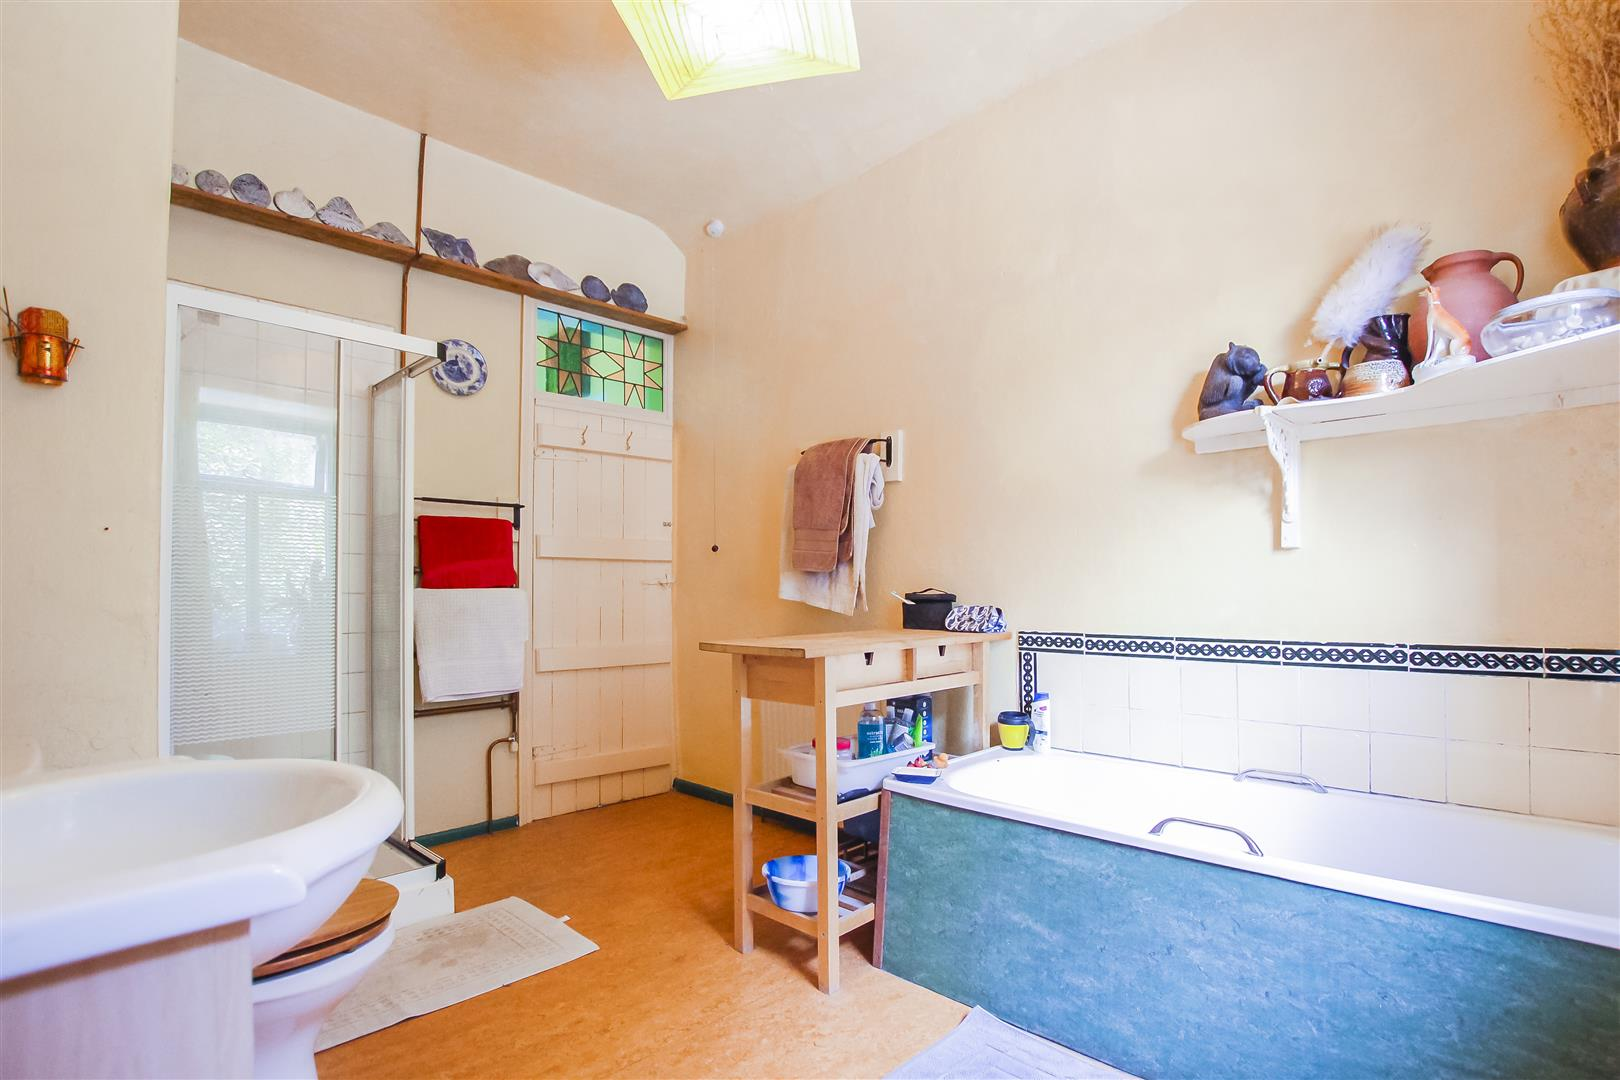 5 Bedroom Farmhouse For Sale - Image 10